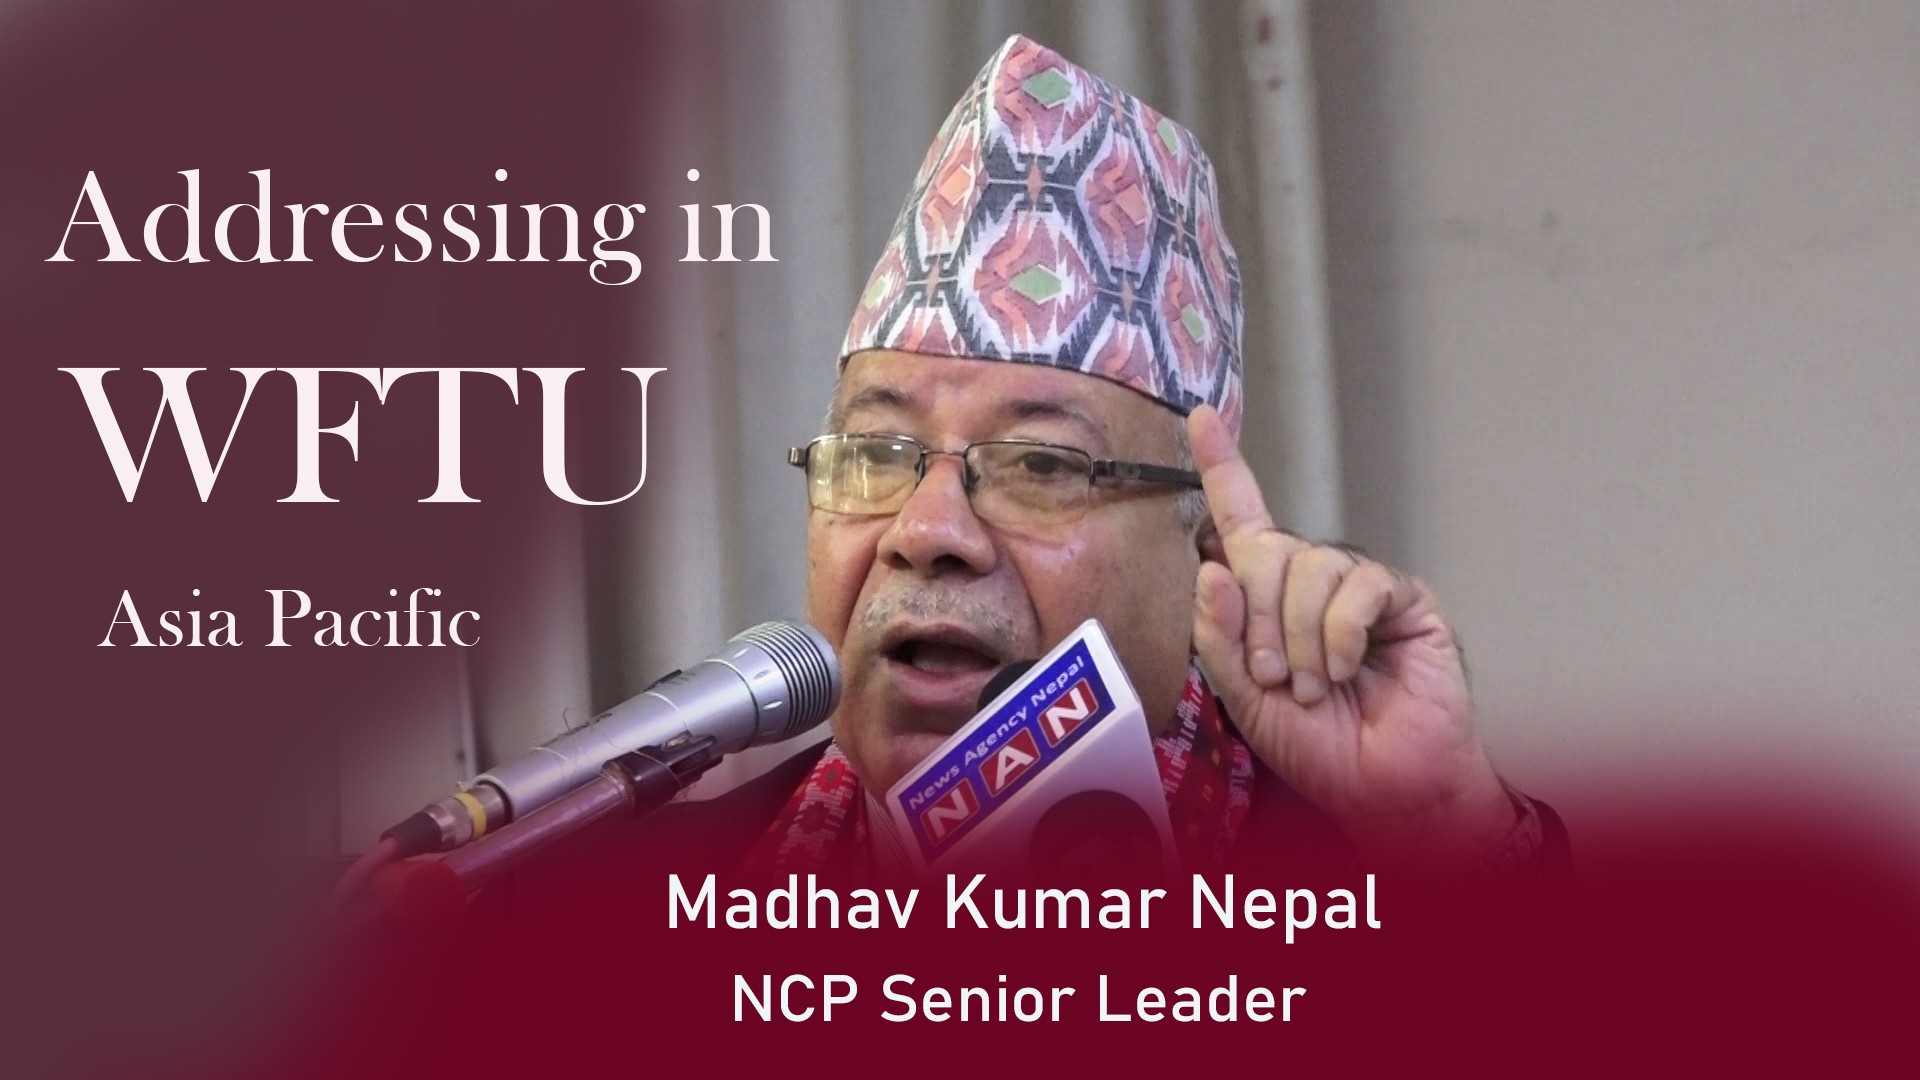 NCP Senior Leader Madhav Kumar Nepal Addressing in WFTU Asia pacific